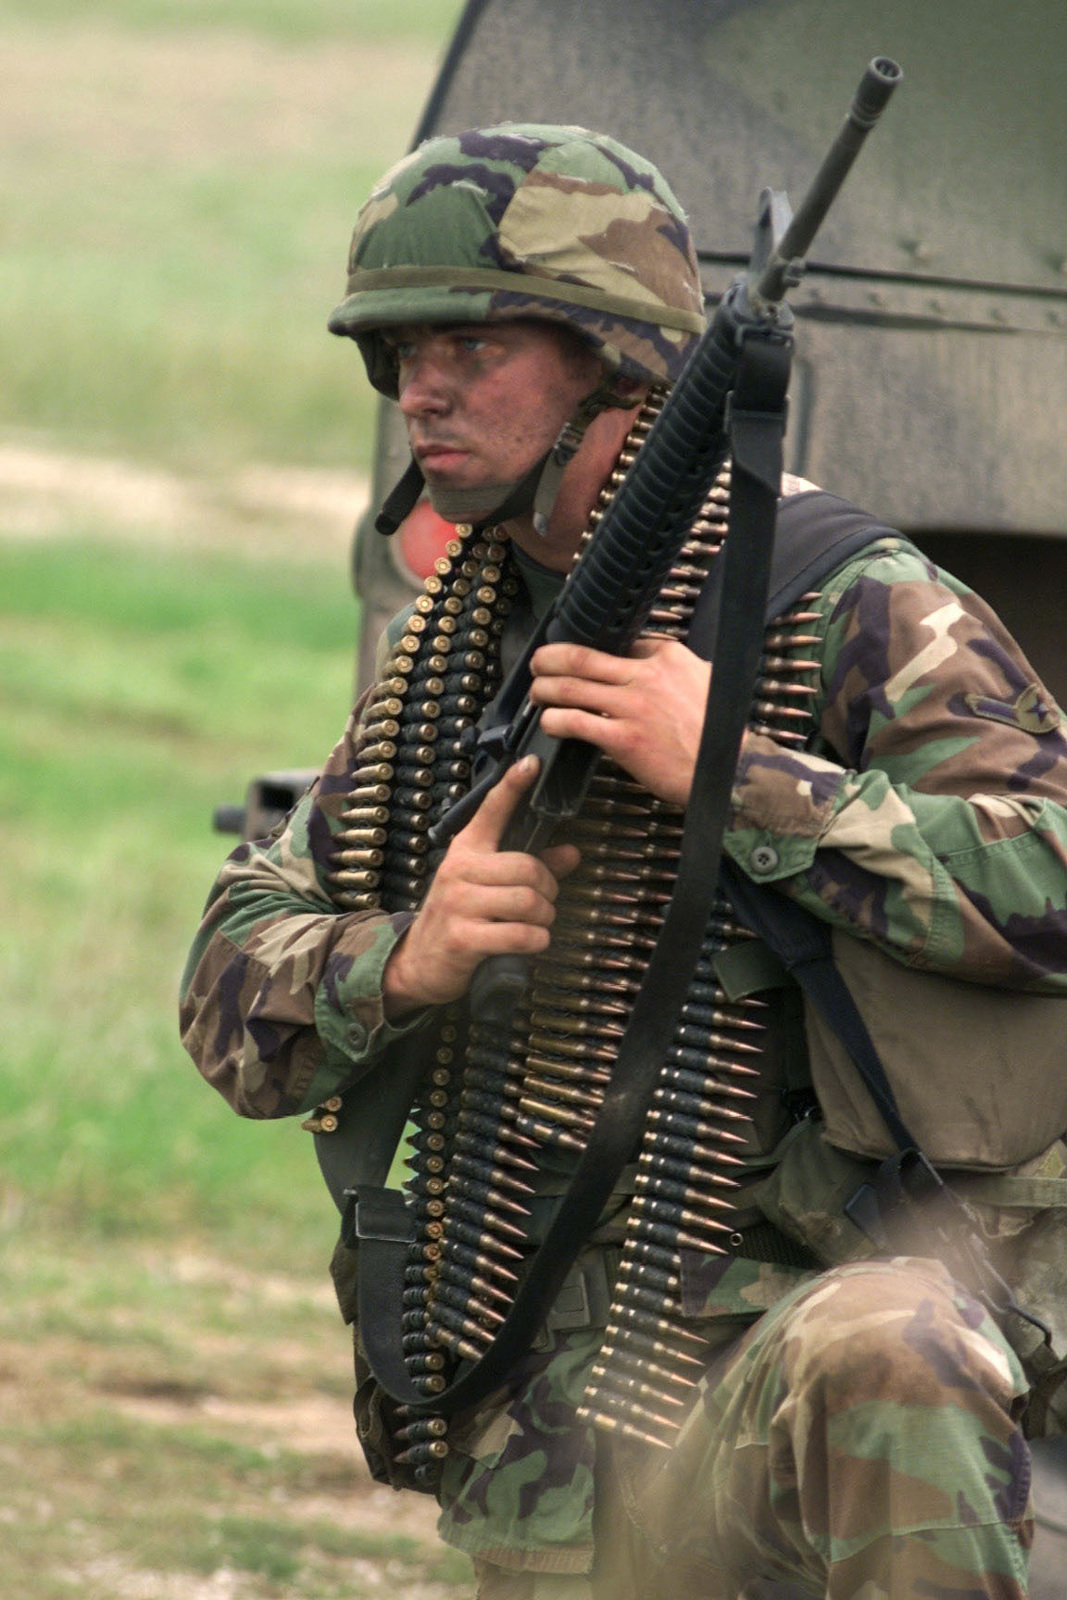 US Air Force AIRMAN Scott J. Paneton, from the US Air Forces in Europe command, waits with an M16A2 rifle and a large amount of ammo to go to his position and compete in the combat weapons competition at Camp Bullis, Texas, during DEFENDER CHALLENGE 2000. Defender Challenge is the annual Air Force wide competition sponsored by Air Force Security Forces. This competition showcases the talents and capabilities of 13 international Security Forces teams in seven physical fitness, base defense and policing skills over six days